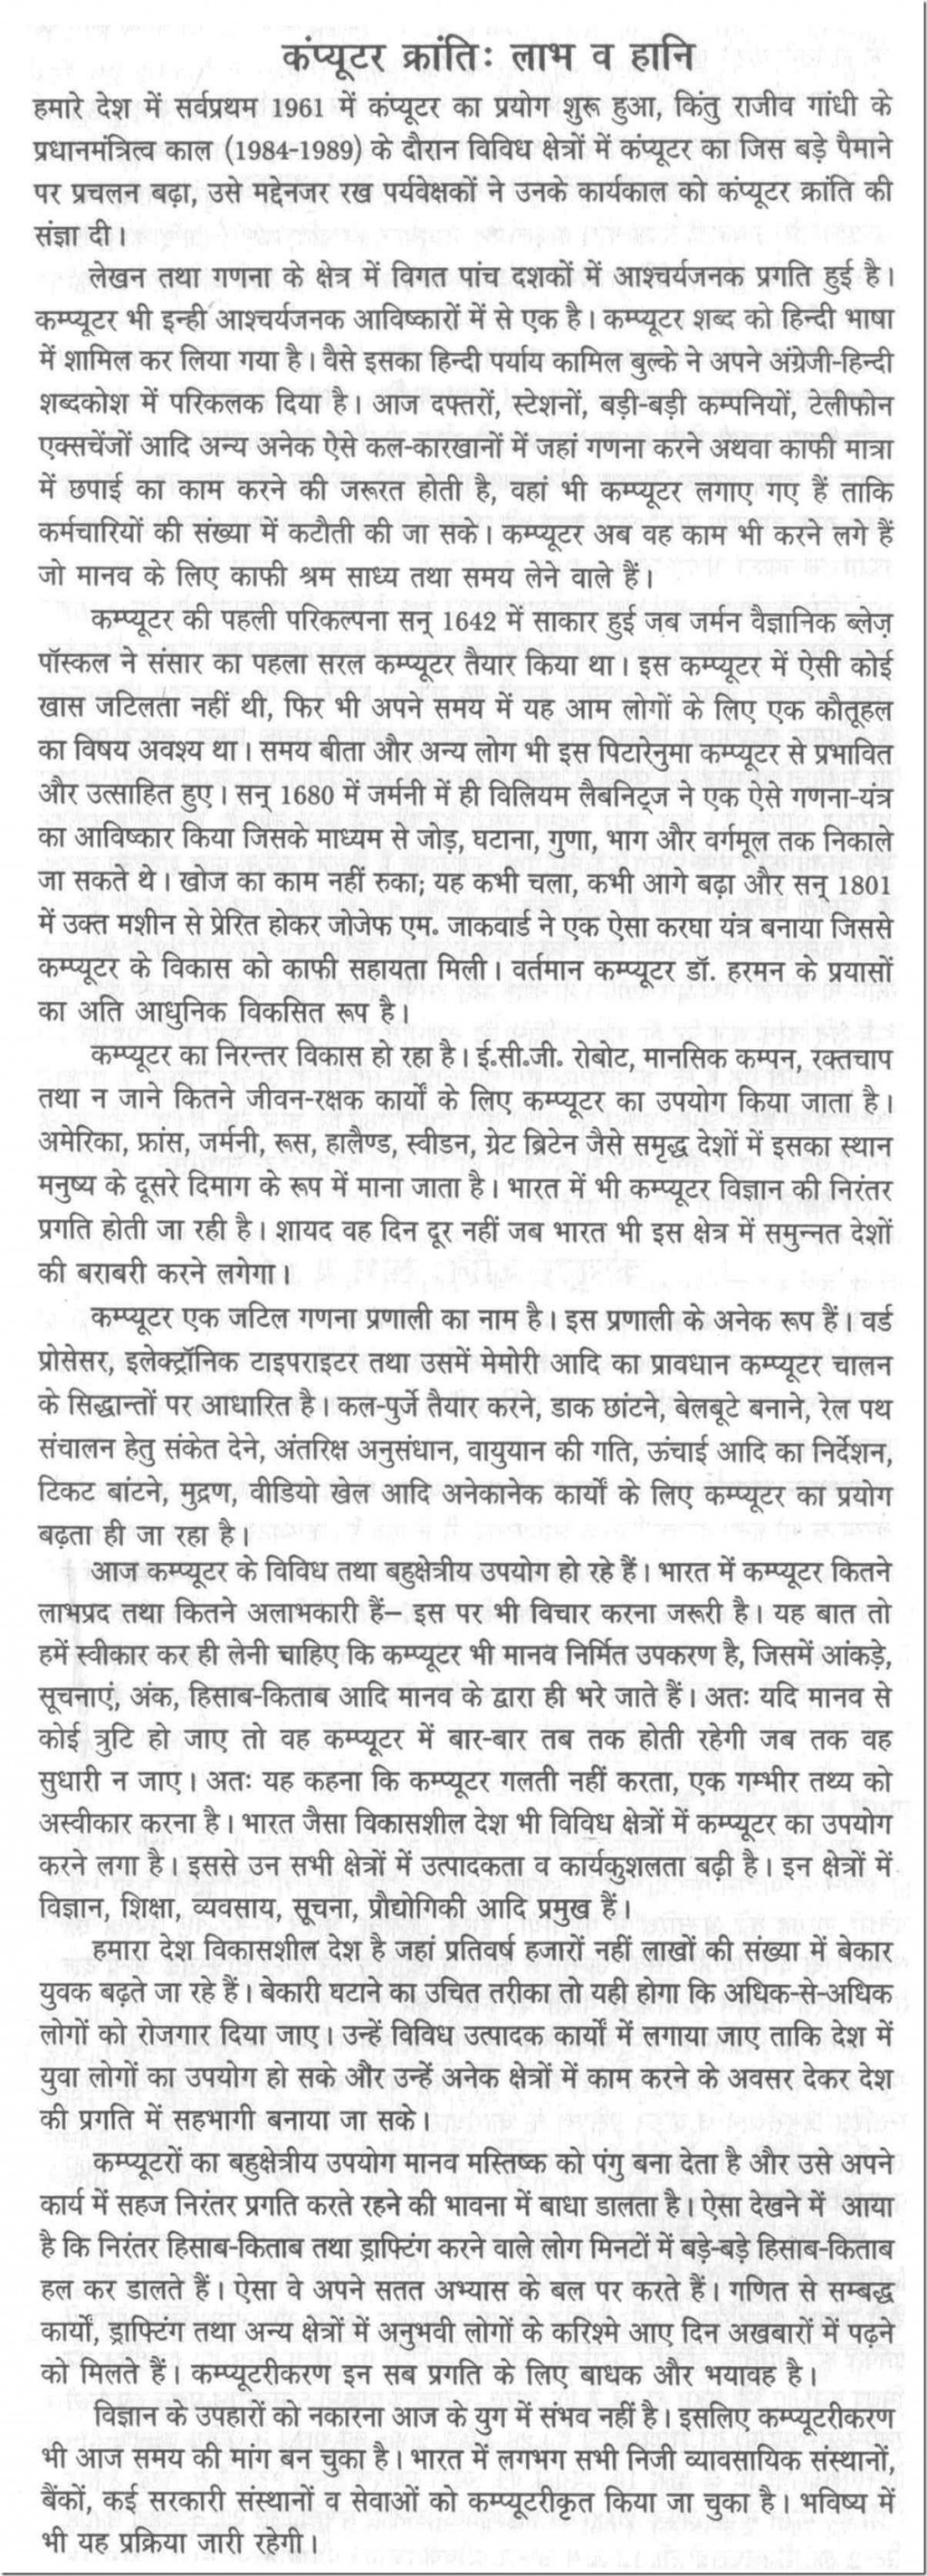 007 Essay Example 10008 Thumb Advantage And Disadvantage Of Shocking Science Advantages Disadvantages Pdf In Hindi English Large